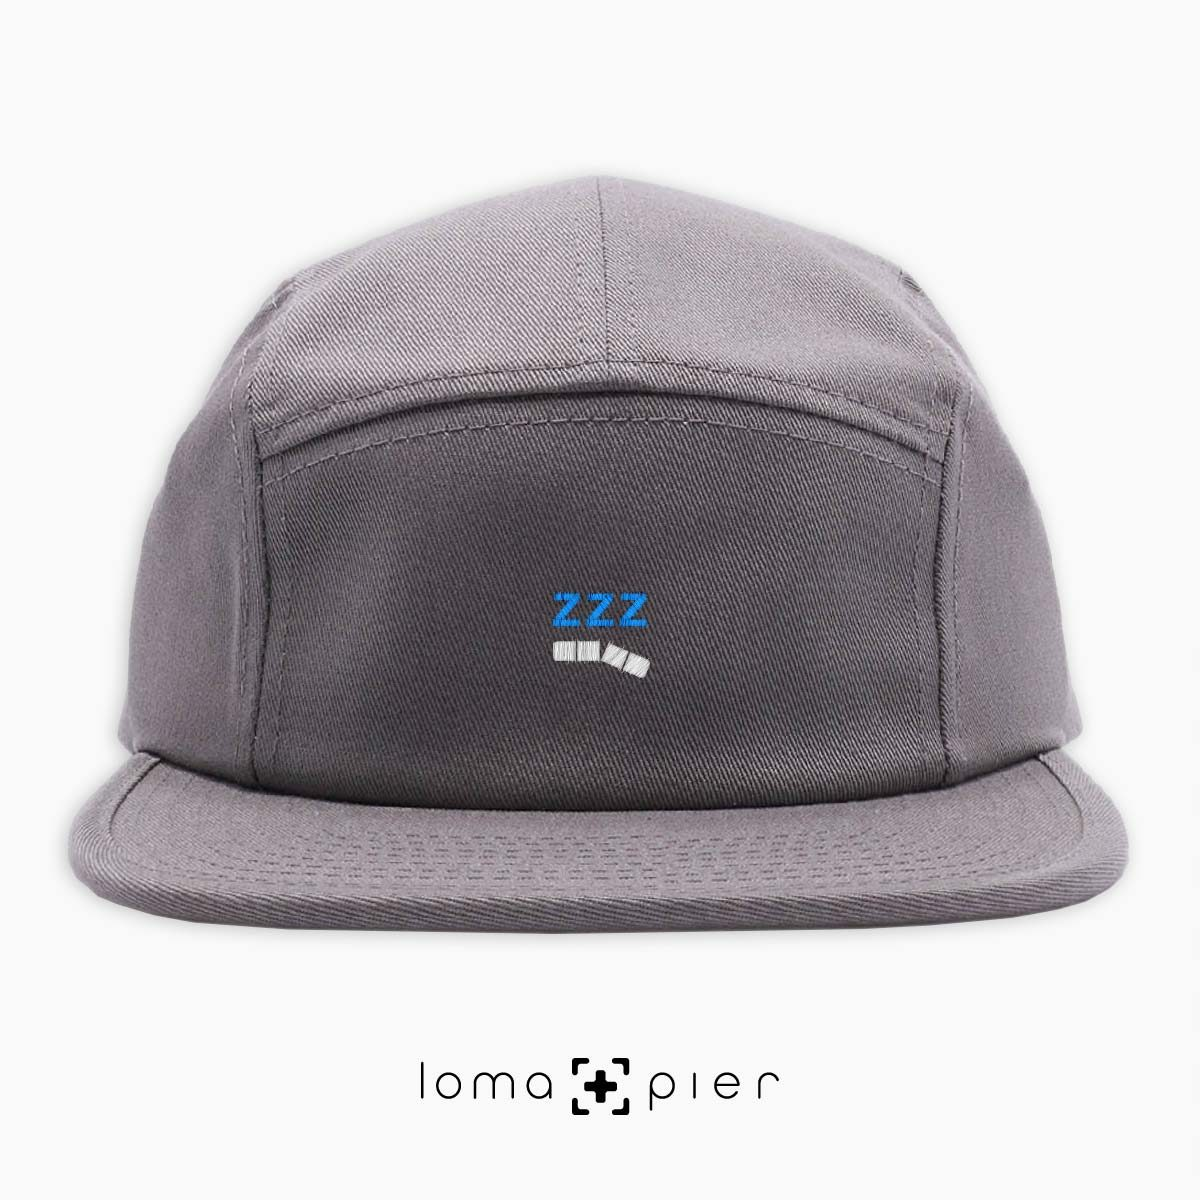 ZZZ-ANNY icon embroidered on a grey cotton 5-panel hat with white and sky blue thread by loma+pier hat store